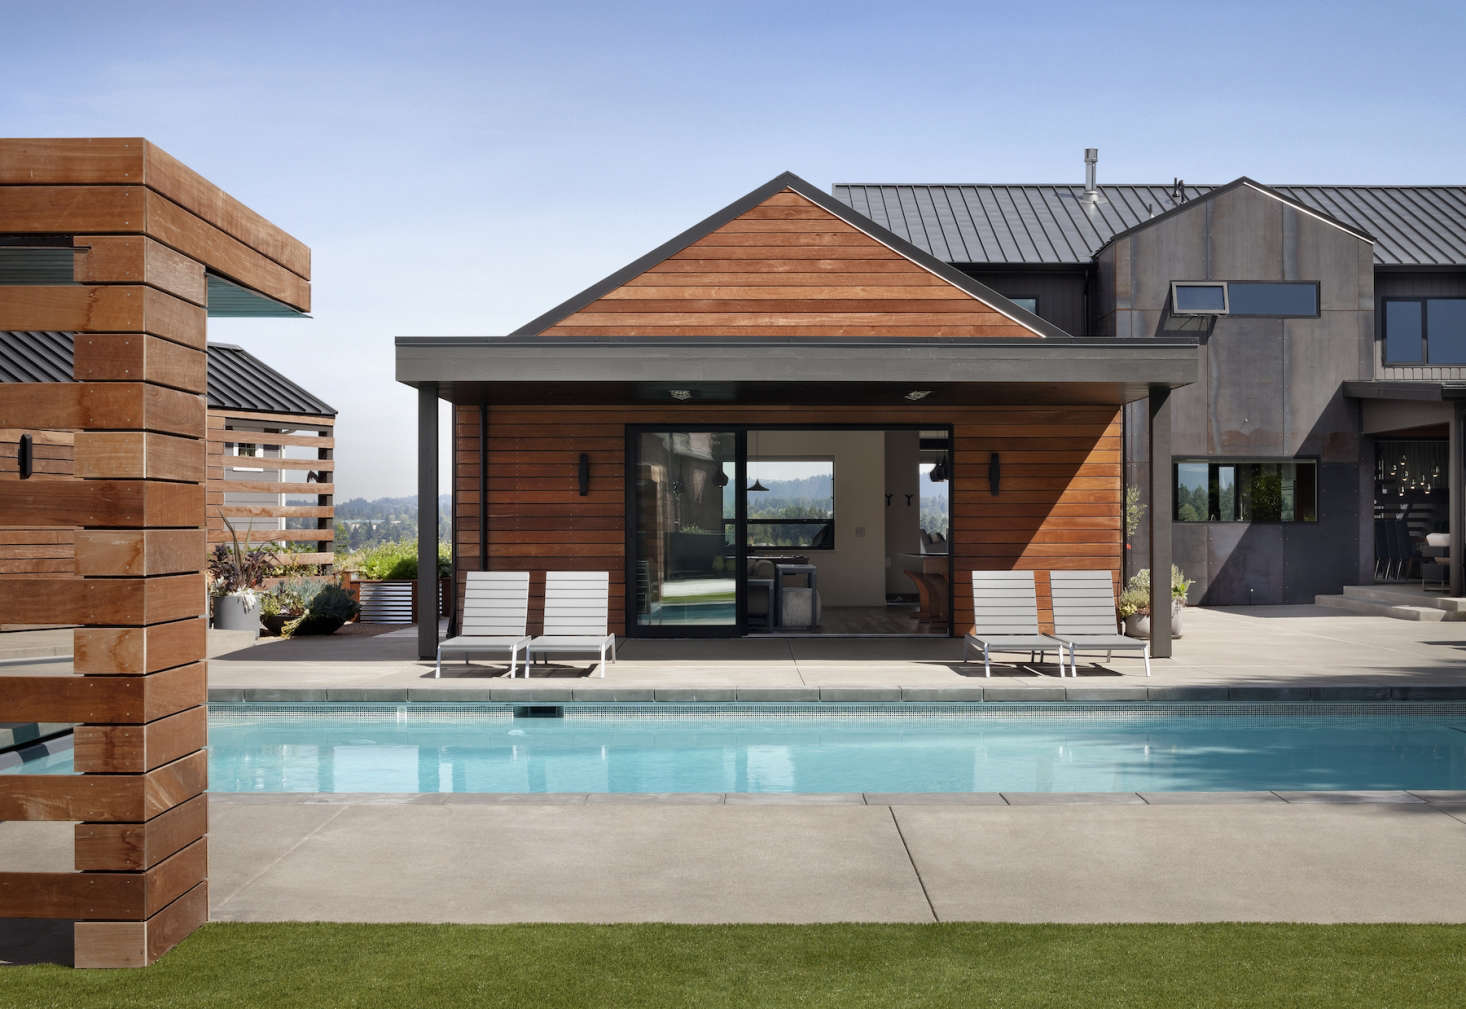 Collaborative Companies replaced an aging pool with one that is more central to the property; it&#8